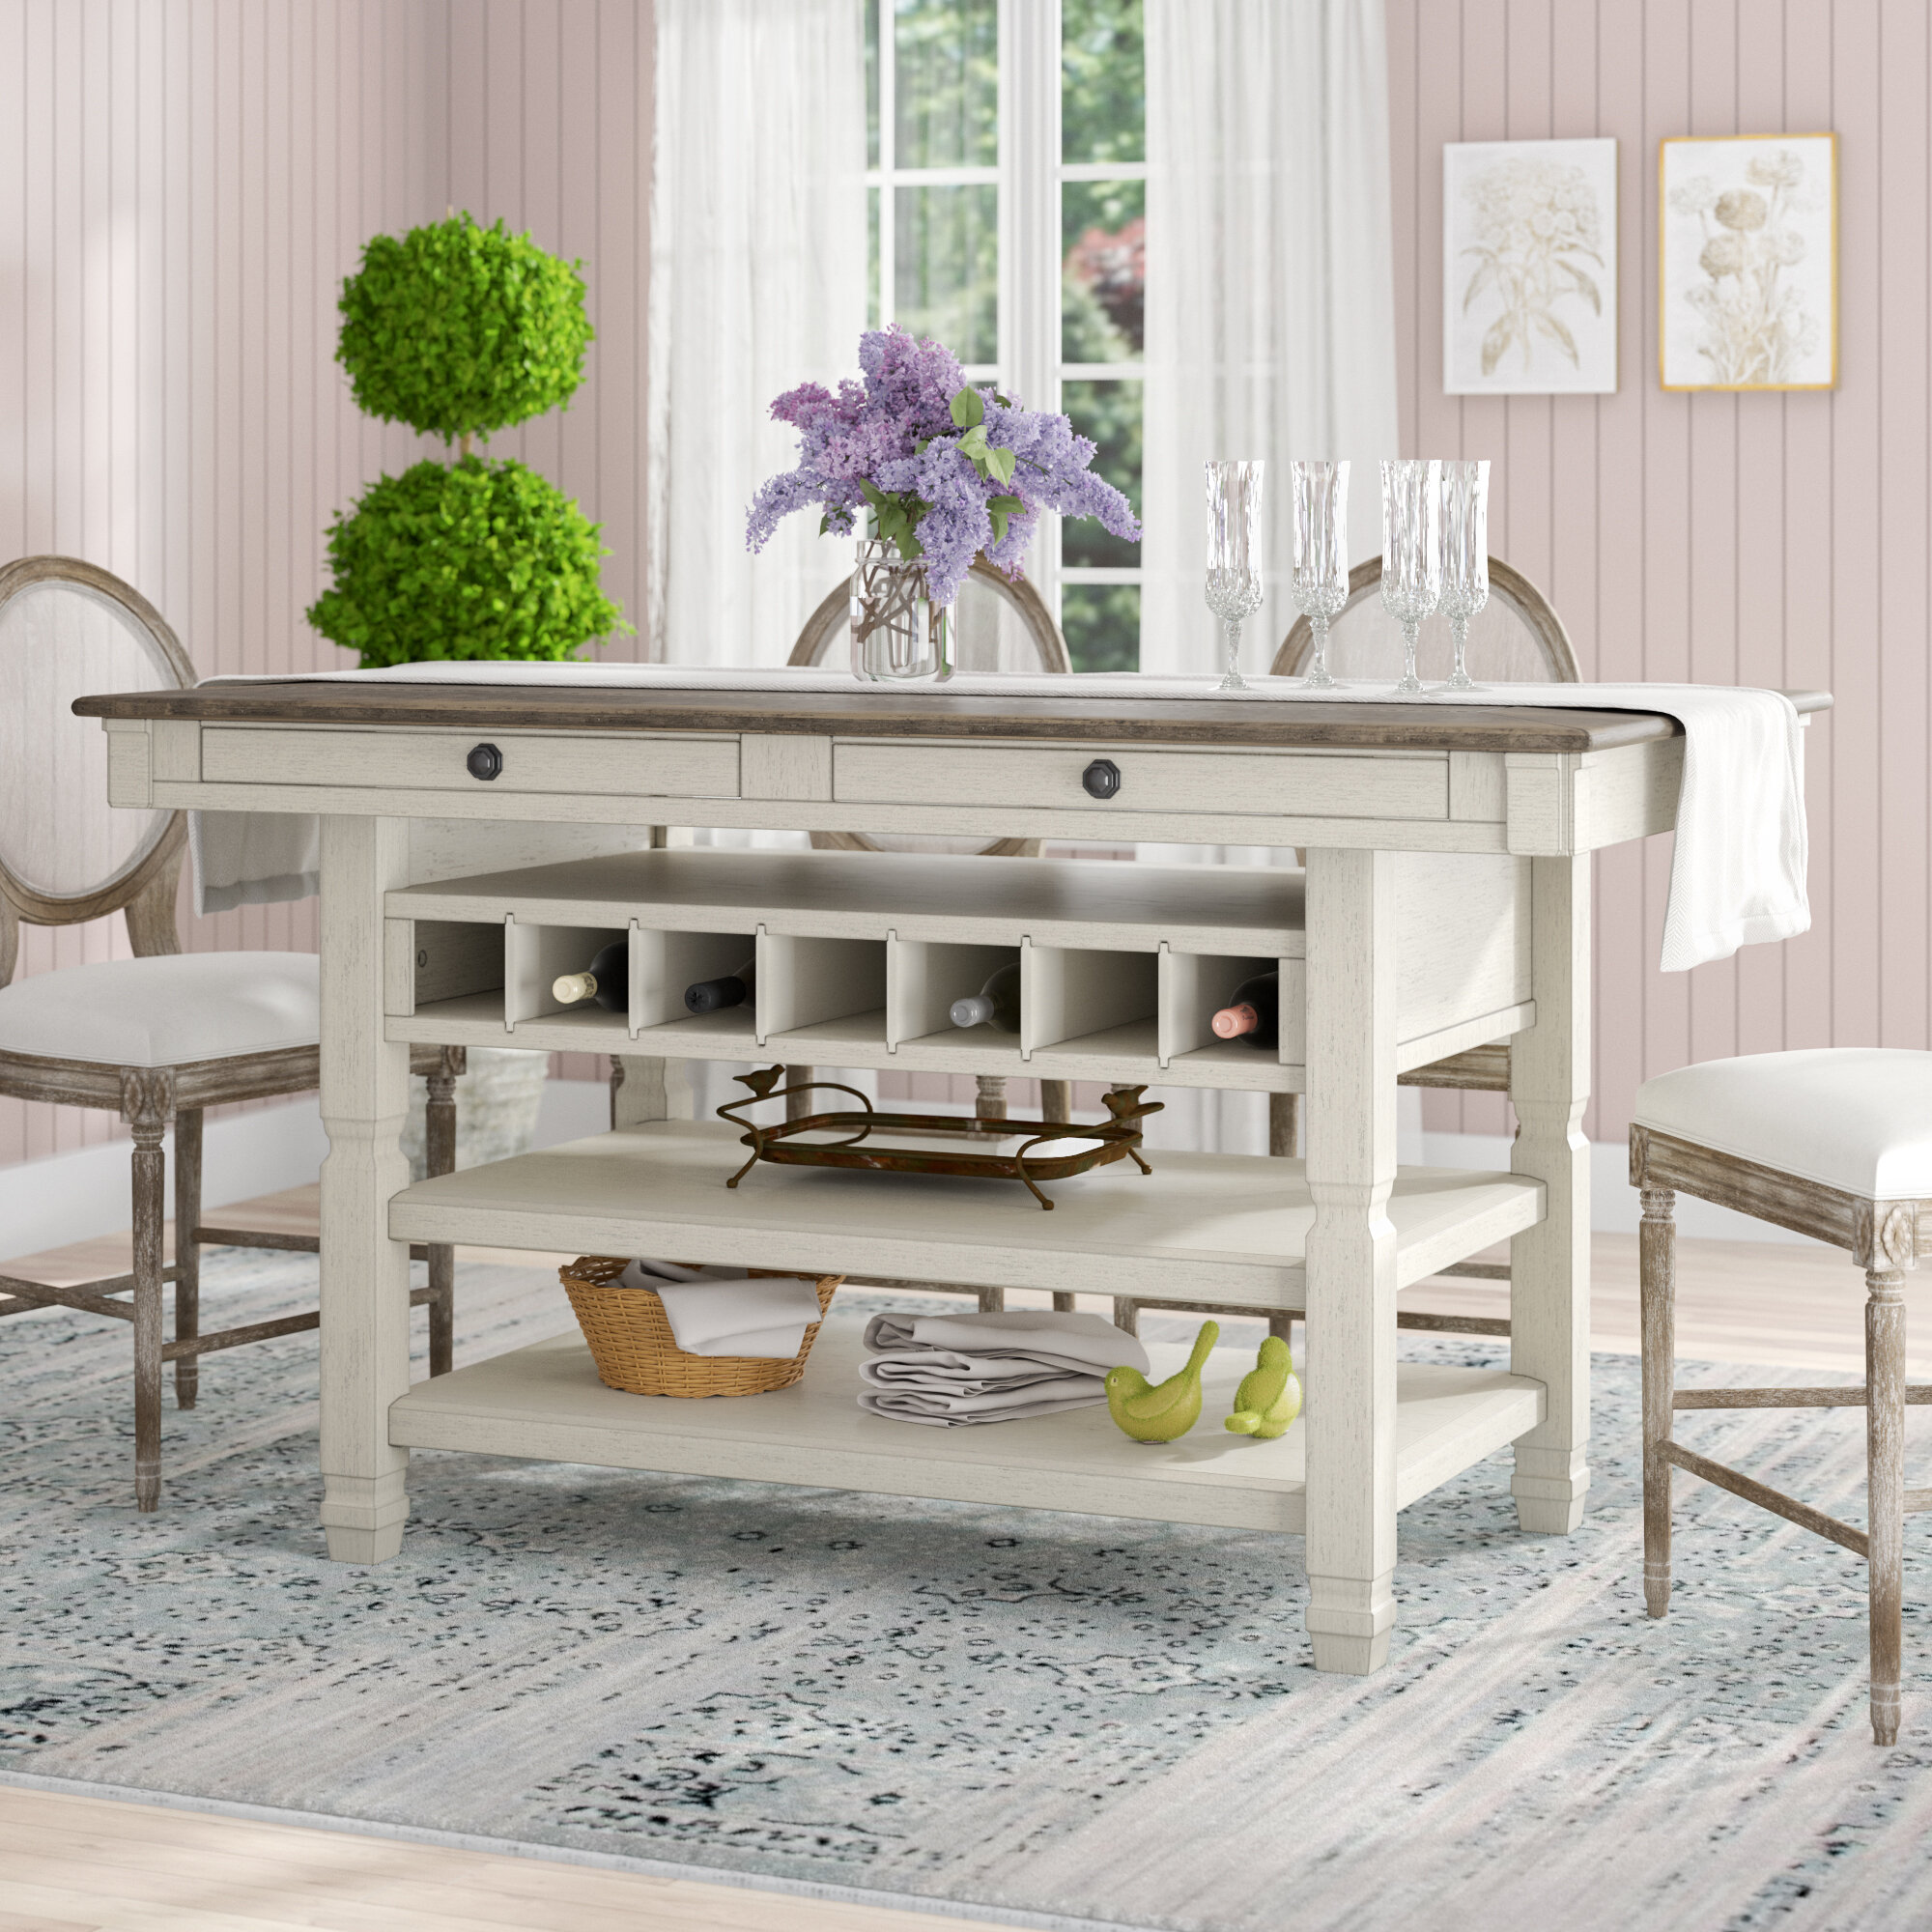 Tall White Kitchen Dining Tables Free Shipping Over 35 Wayfair